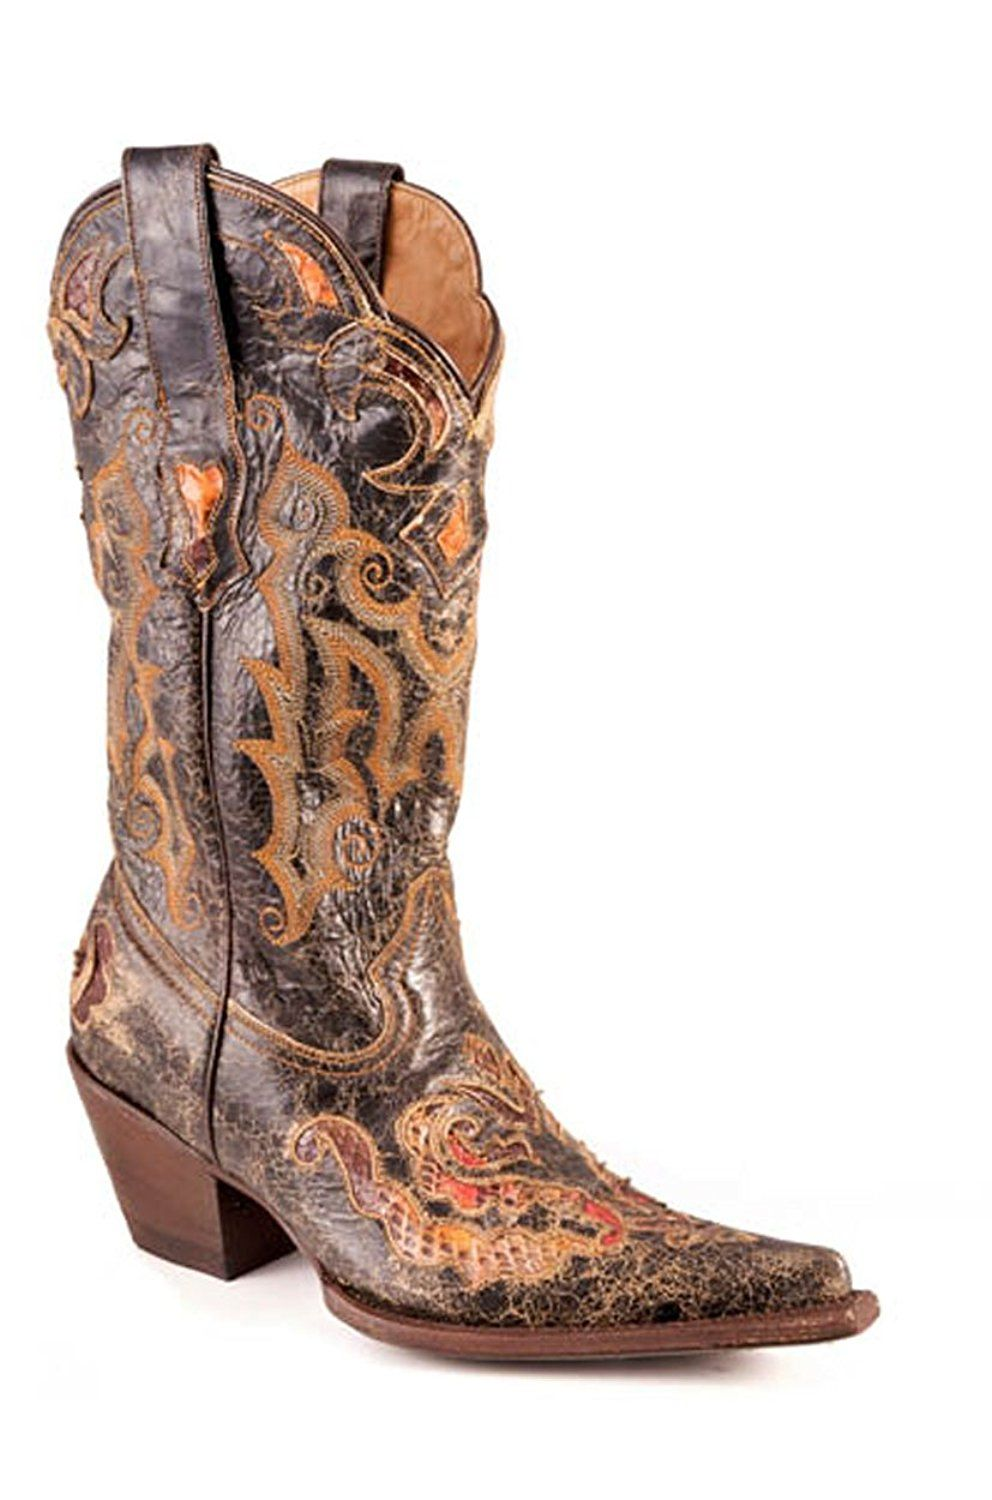 1d6875b2be Stetson Womens Exotic 13in Black Python Snake Skin Western Cowboy Boots --  Wow! I